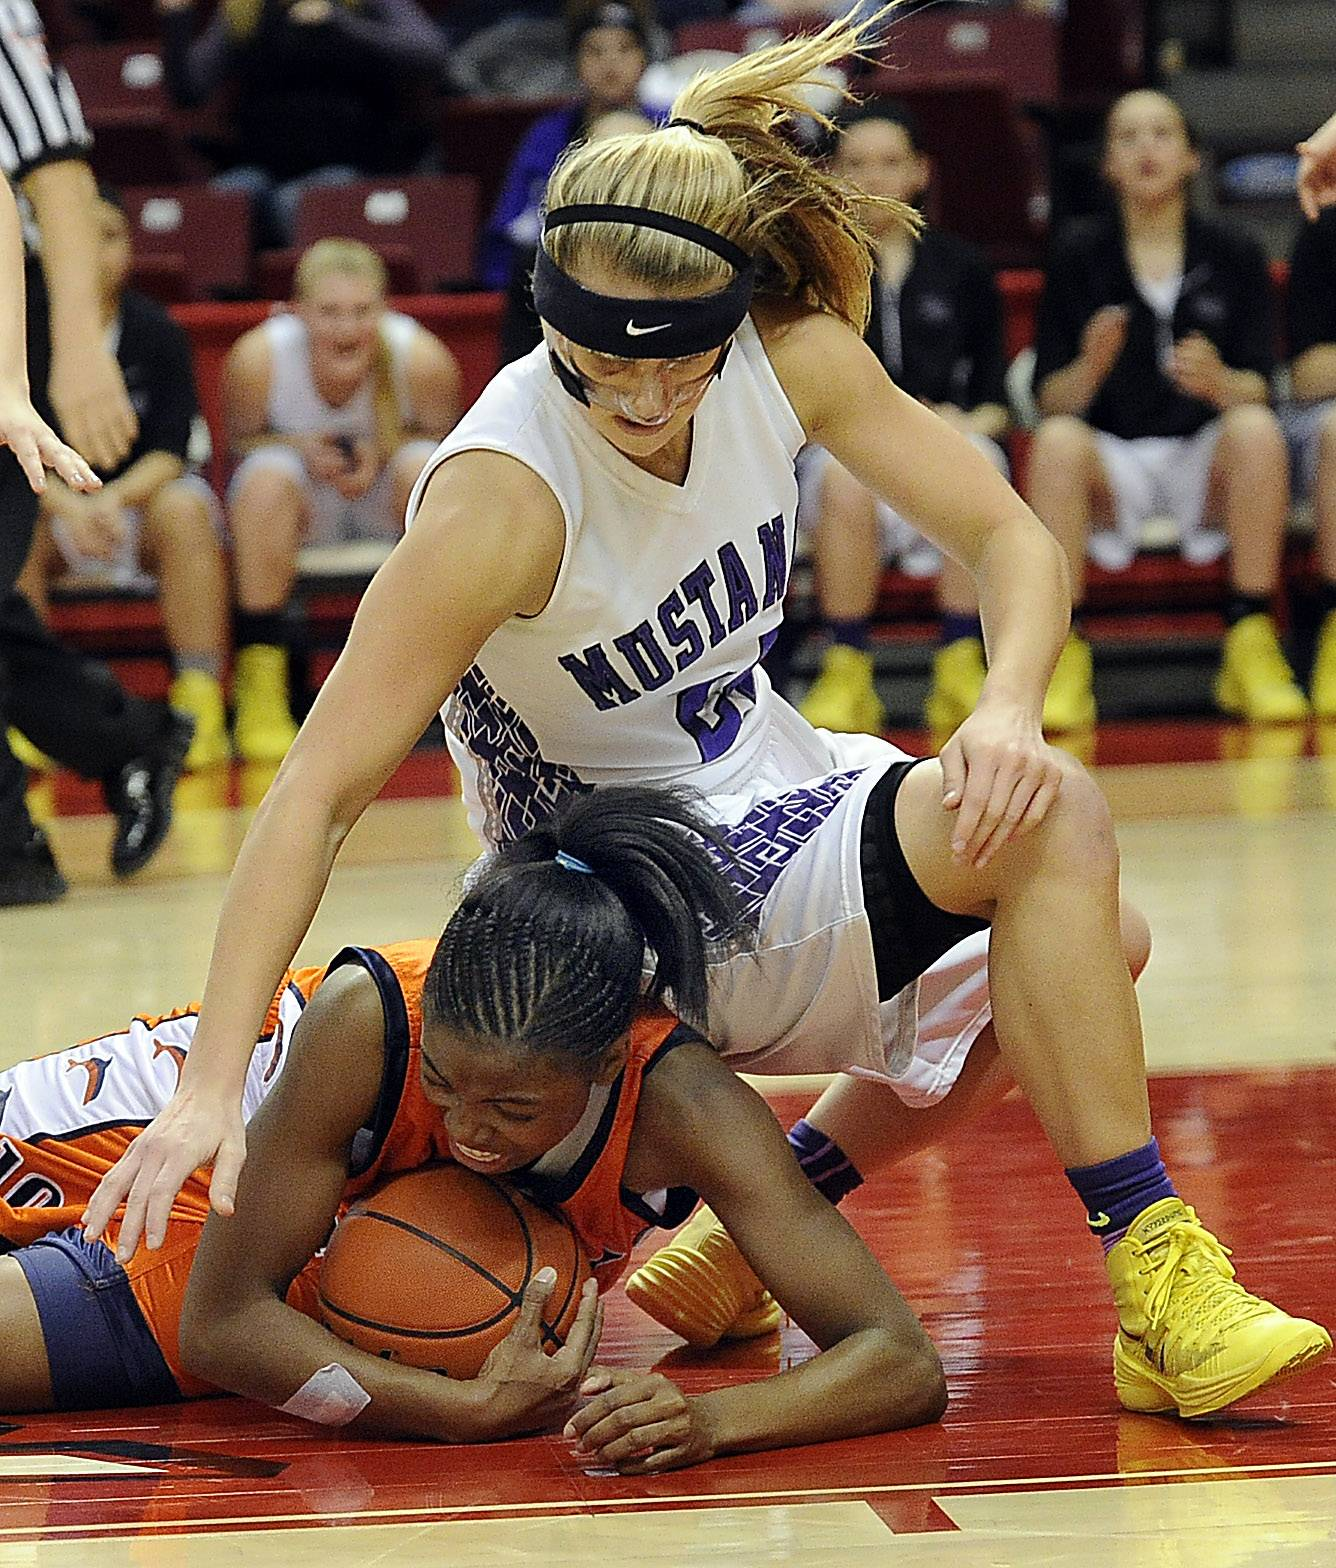 Rolling Meadows' Alexis Glasgow battles for the ball with Whitney Young's Kiara Lewis in the second half of the Class 4A state championship game in Normal on Saturday.